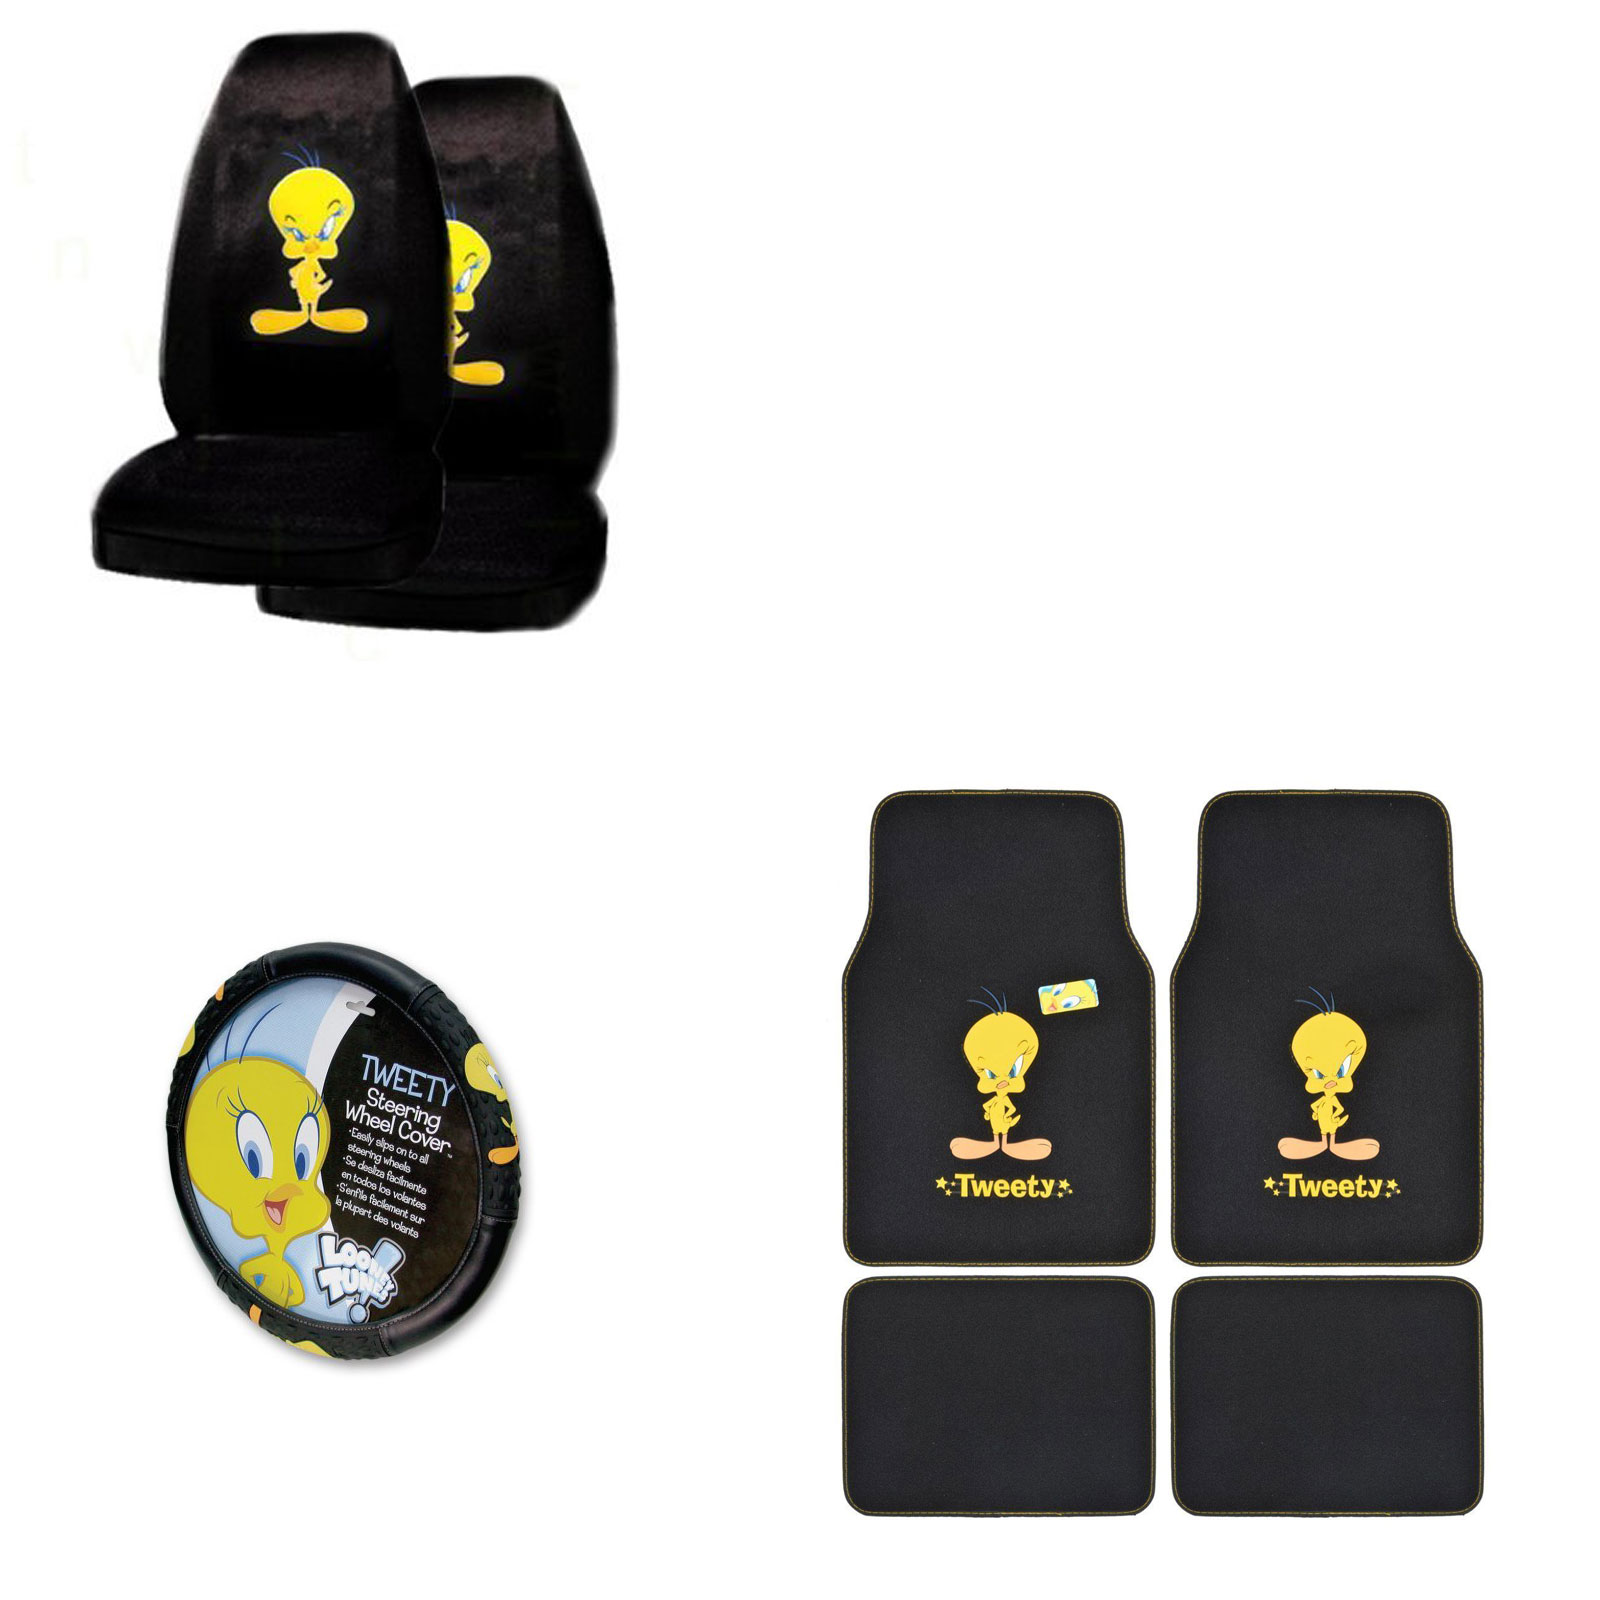 Tweety Bird 4 Pc Carpet Floor Mats And 2 Pc Seat Covers With Wheel Cover